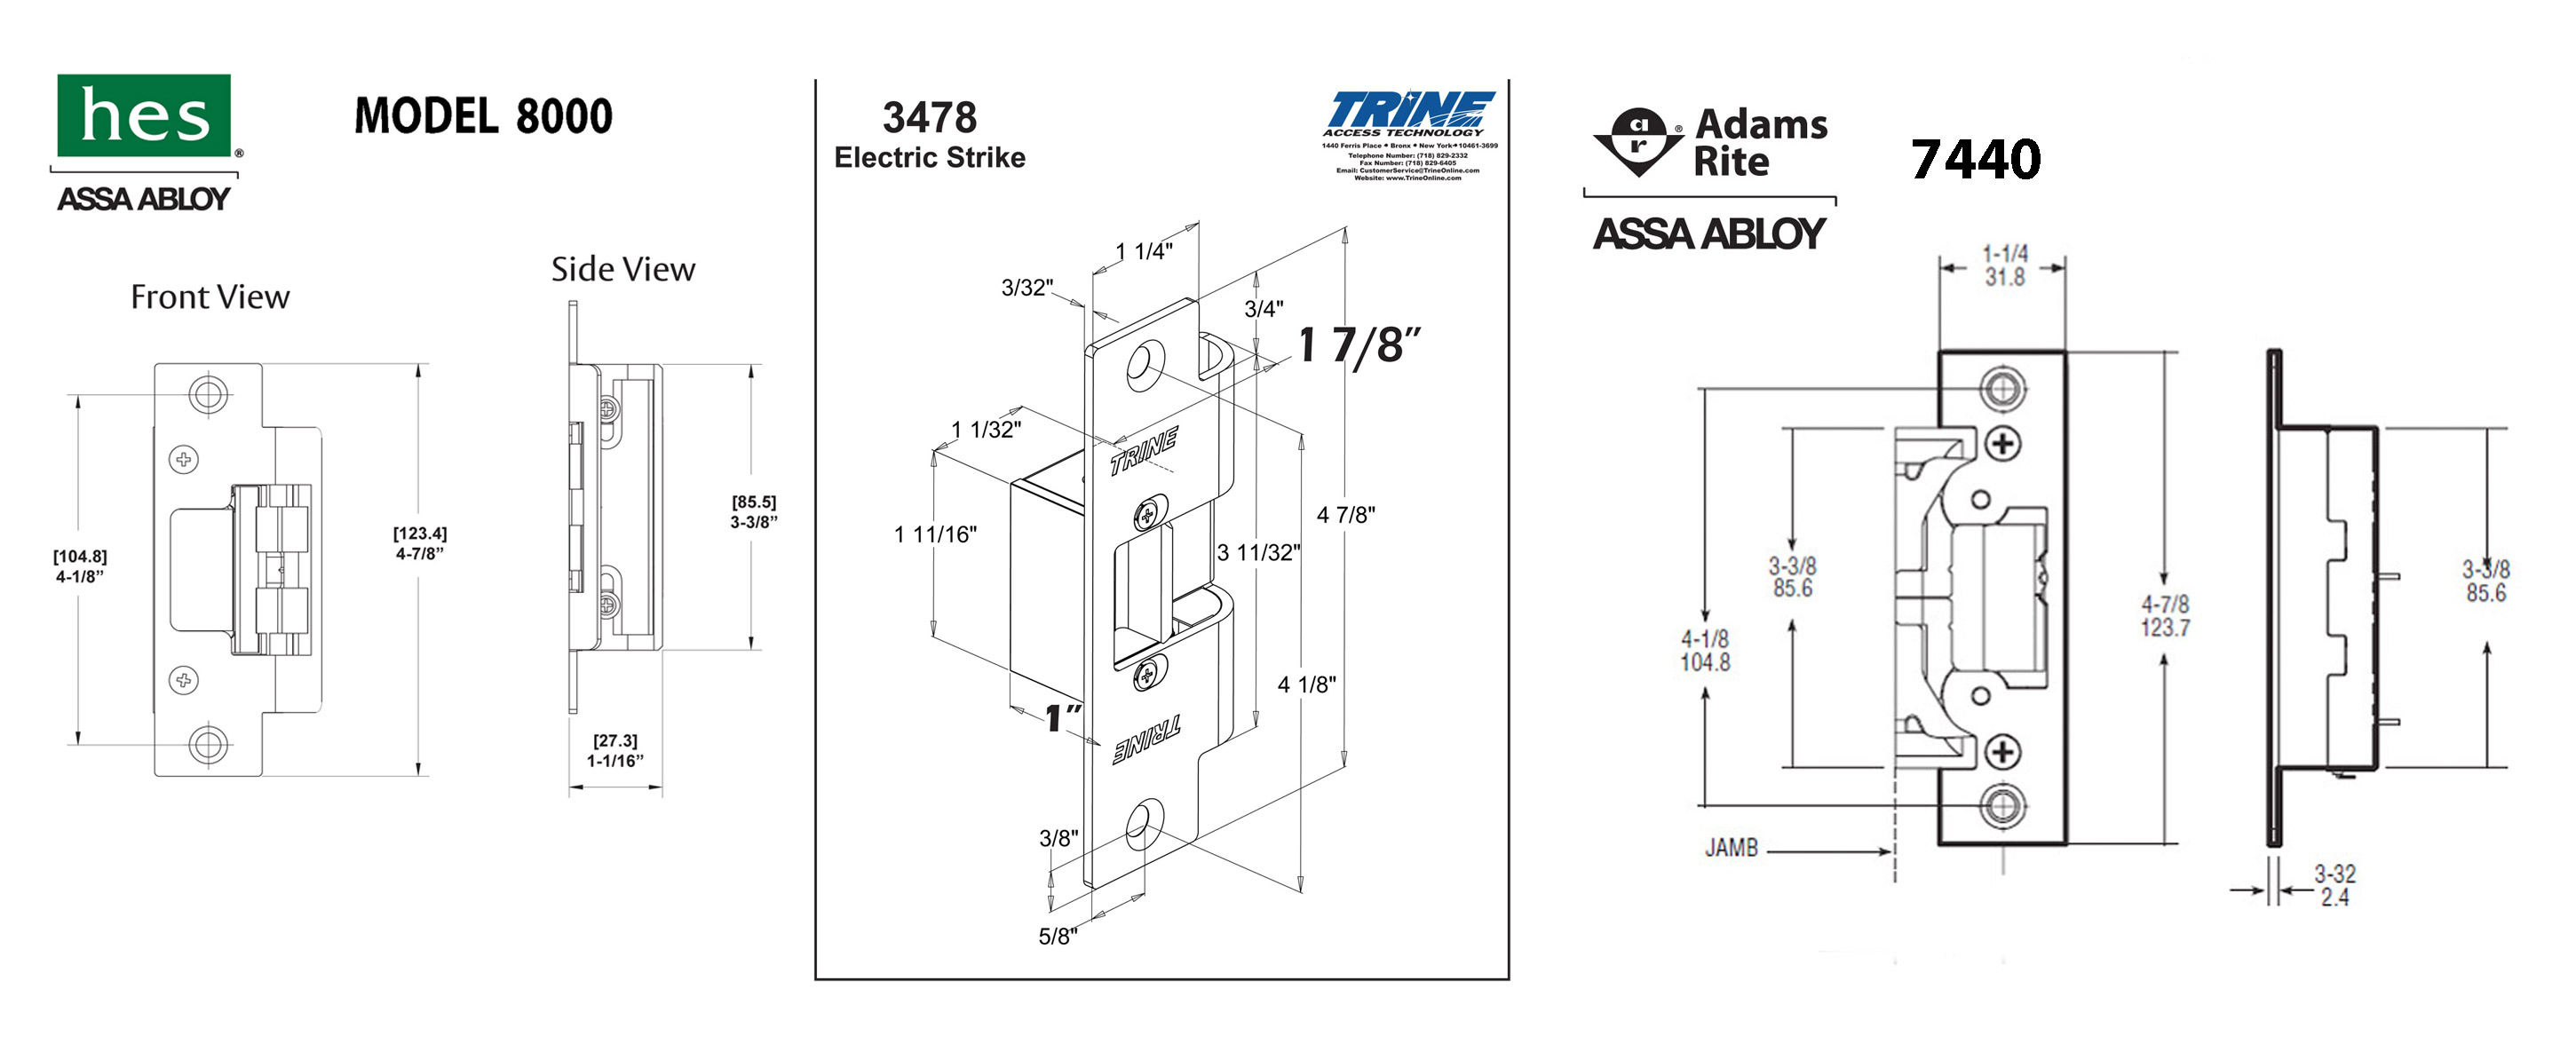 strikethree door hardware door hardware genius adams rite 8800 wiring diagram at crackthecode.co